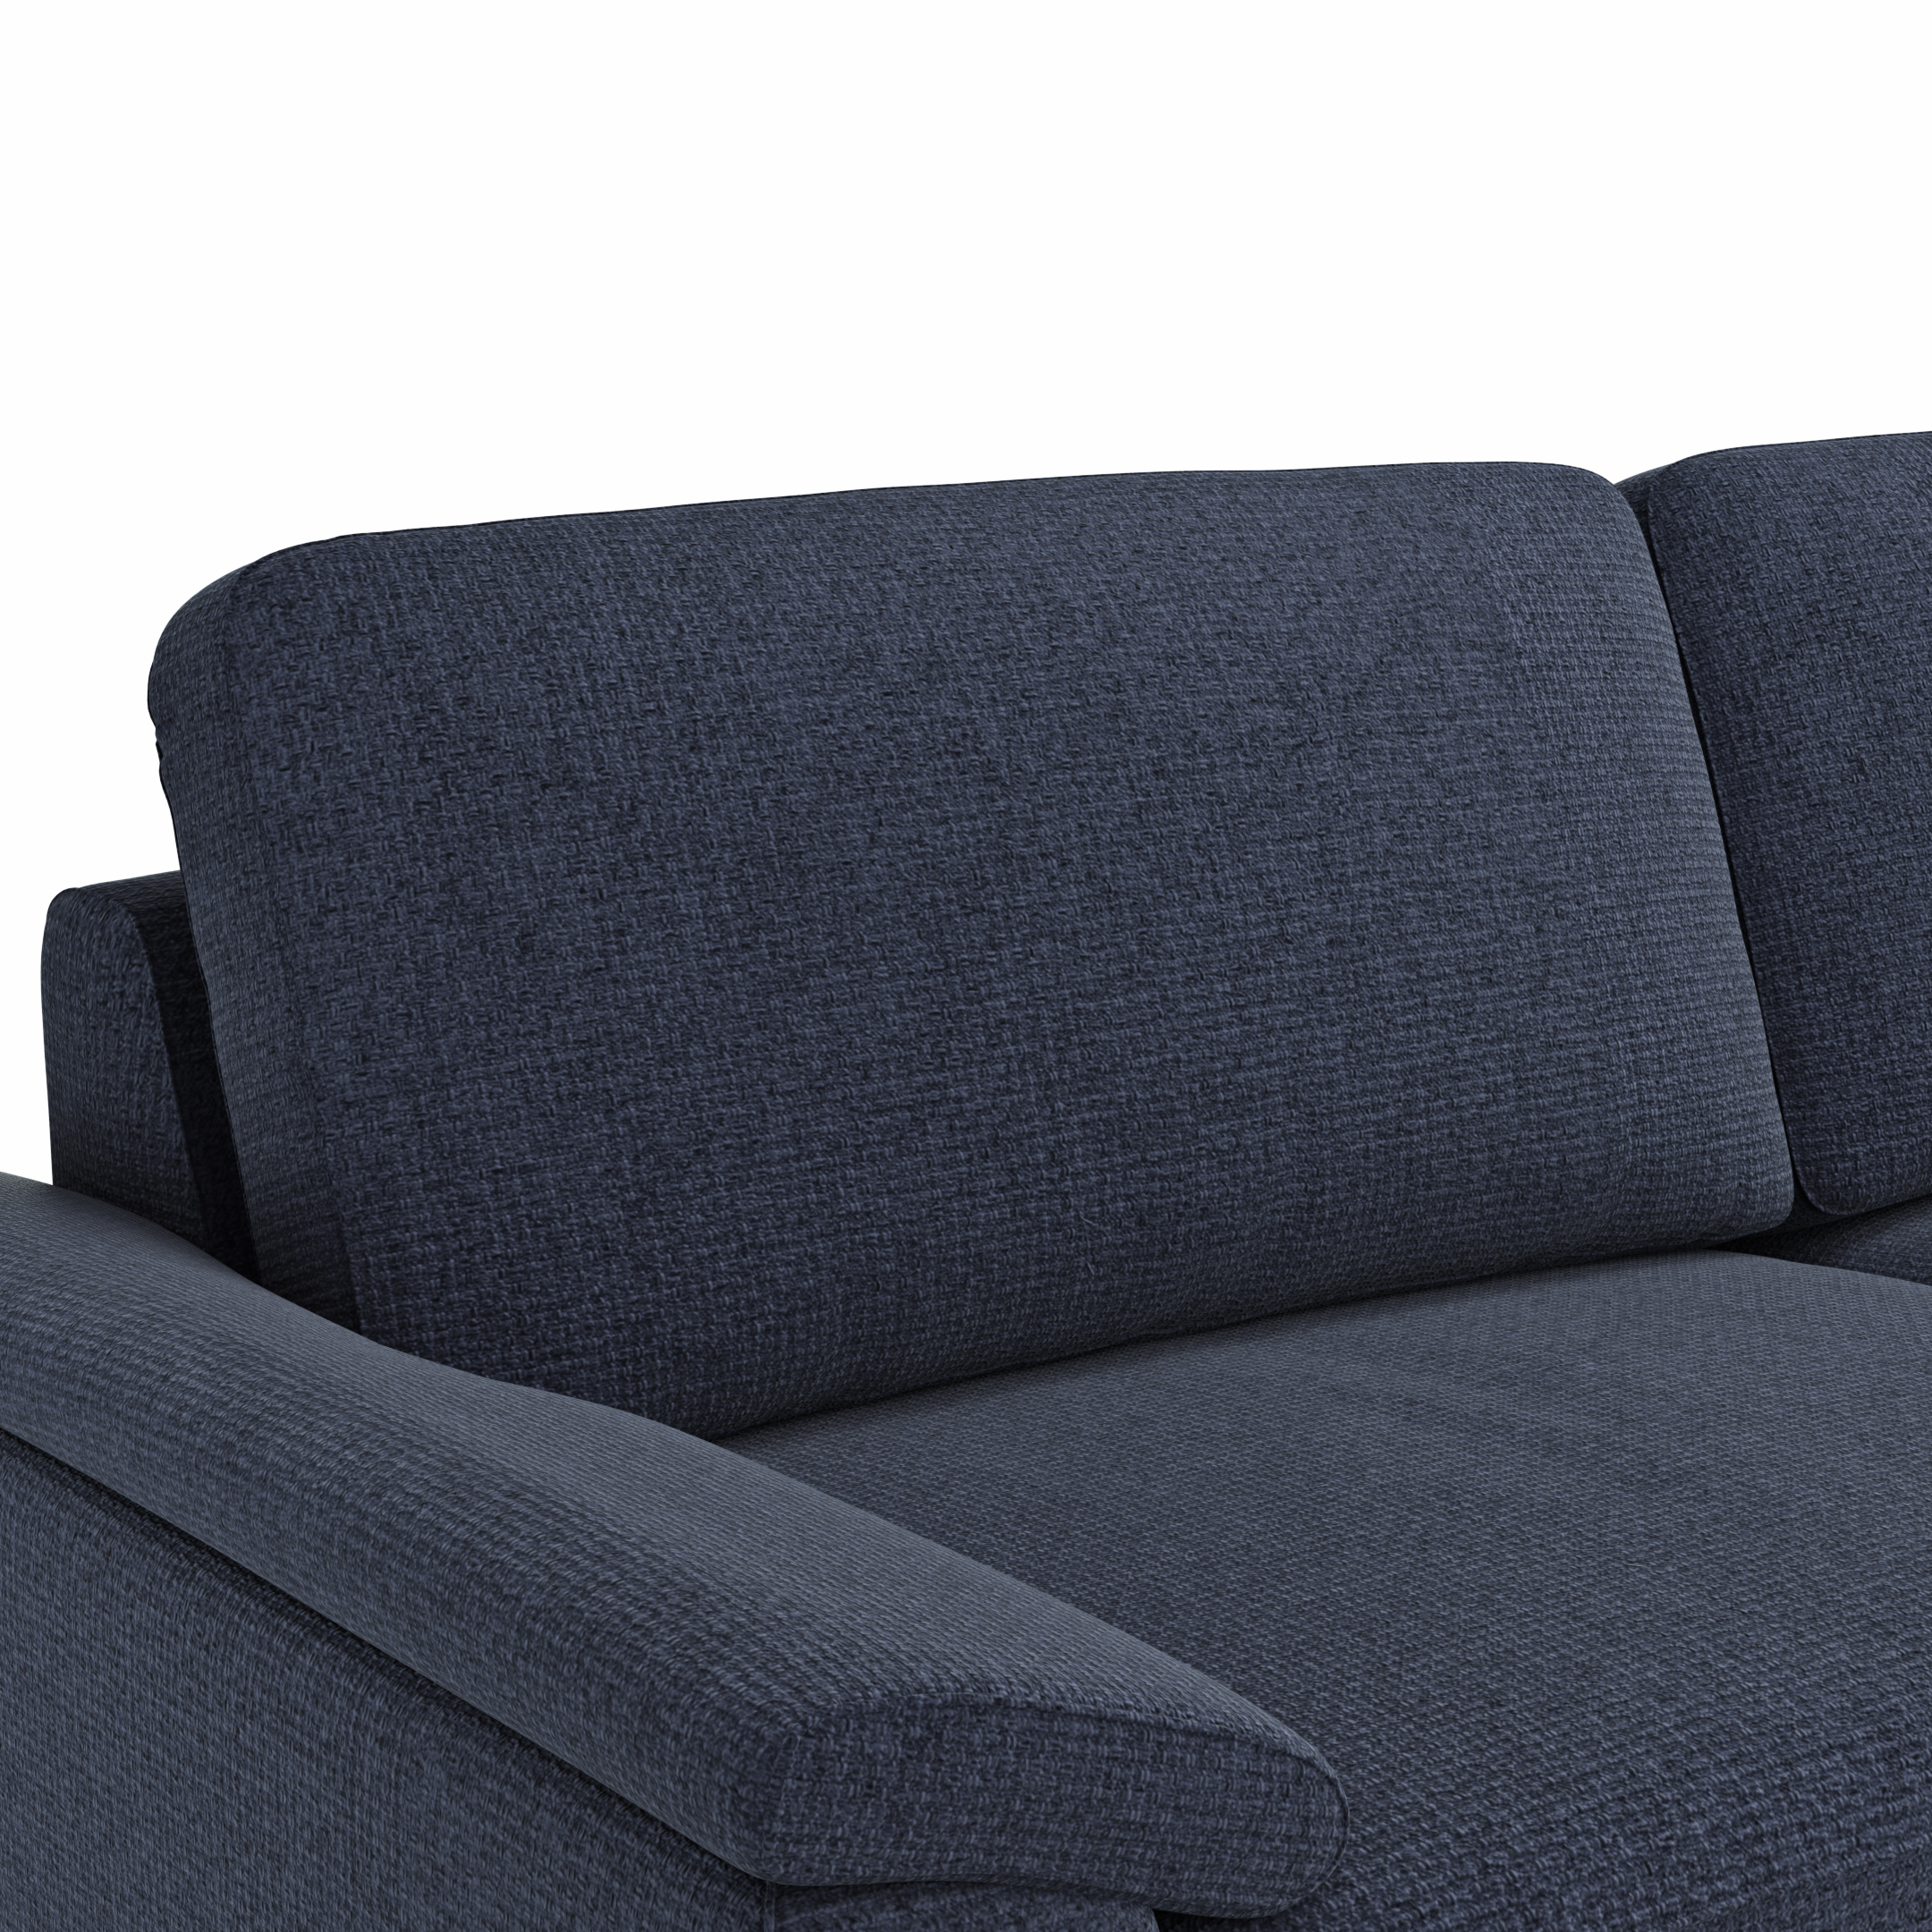 Global Family 3 Sitzer Sofa Oviedo detailbild 1 102294 | Homepoet